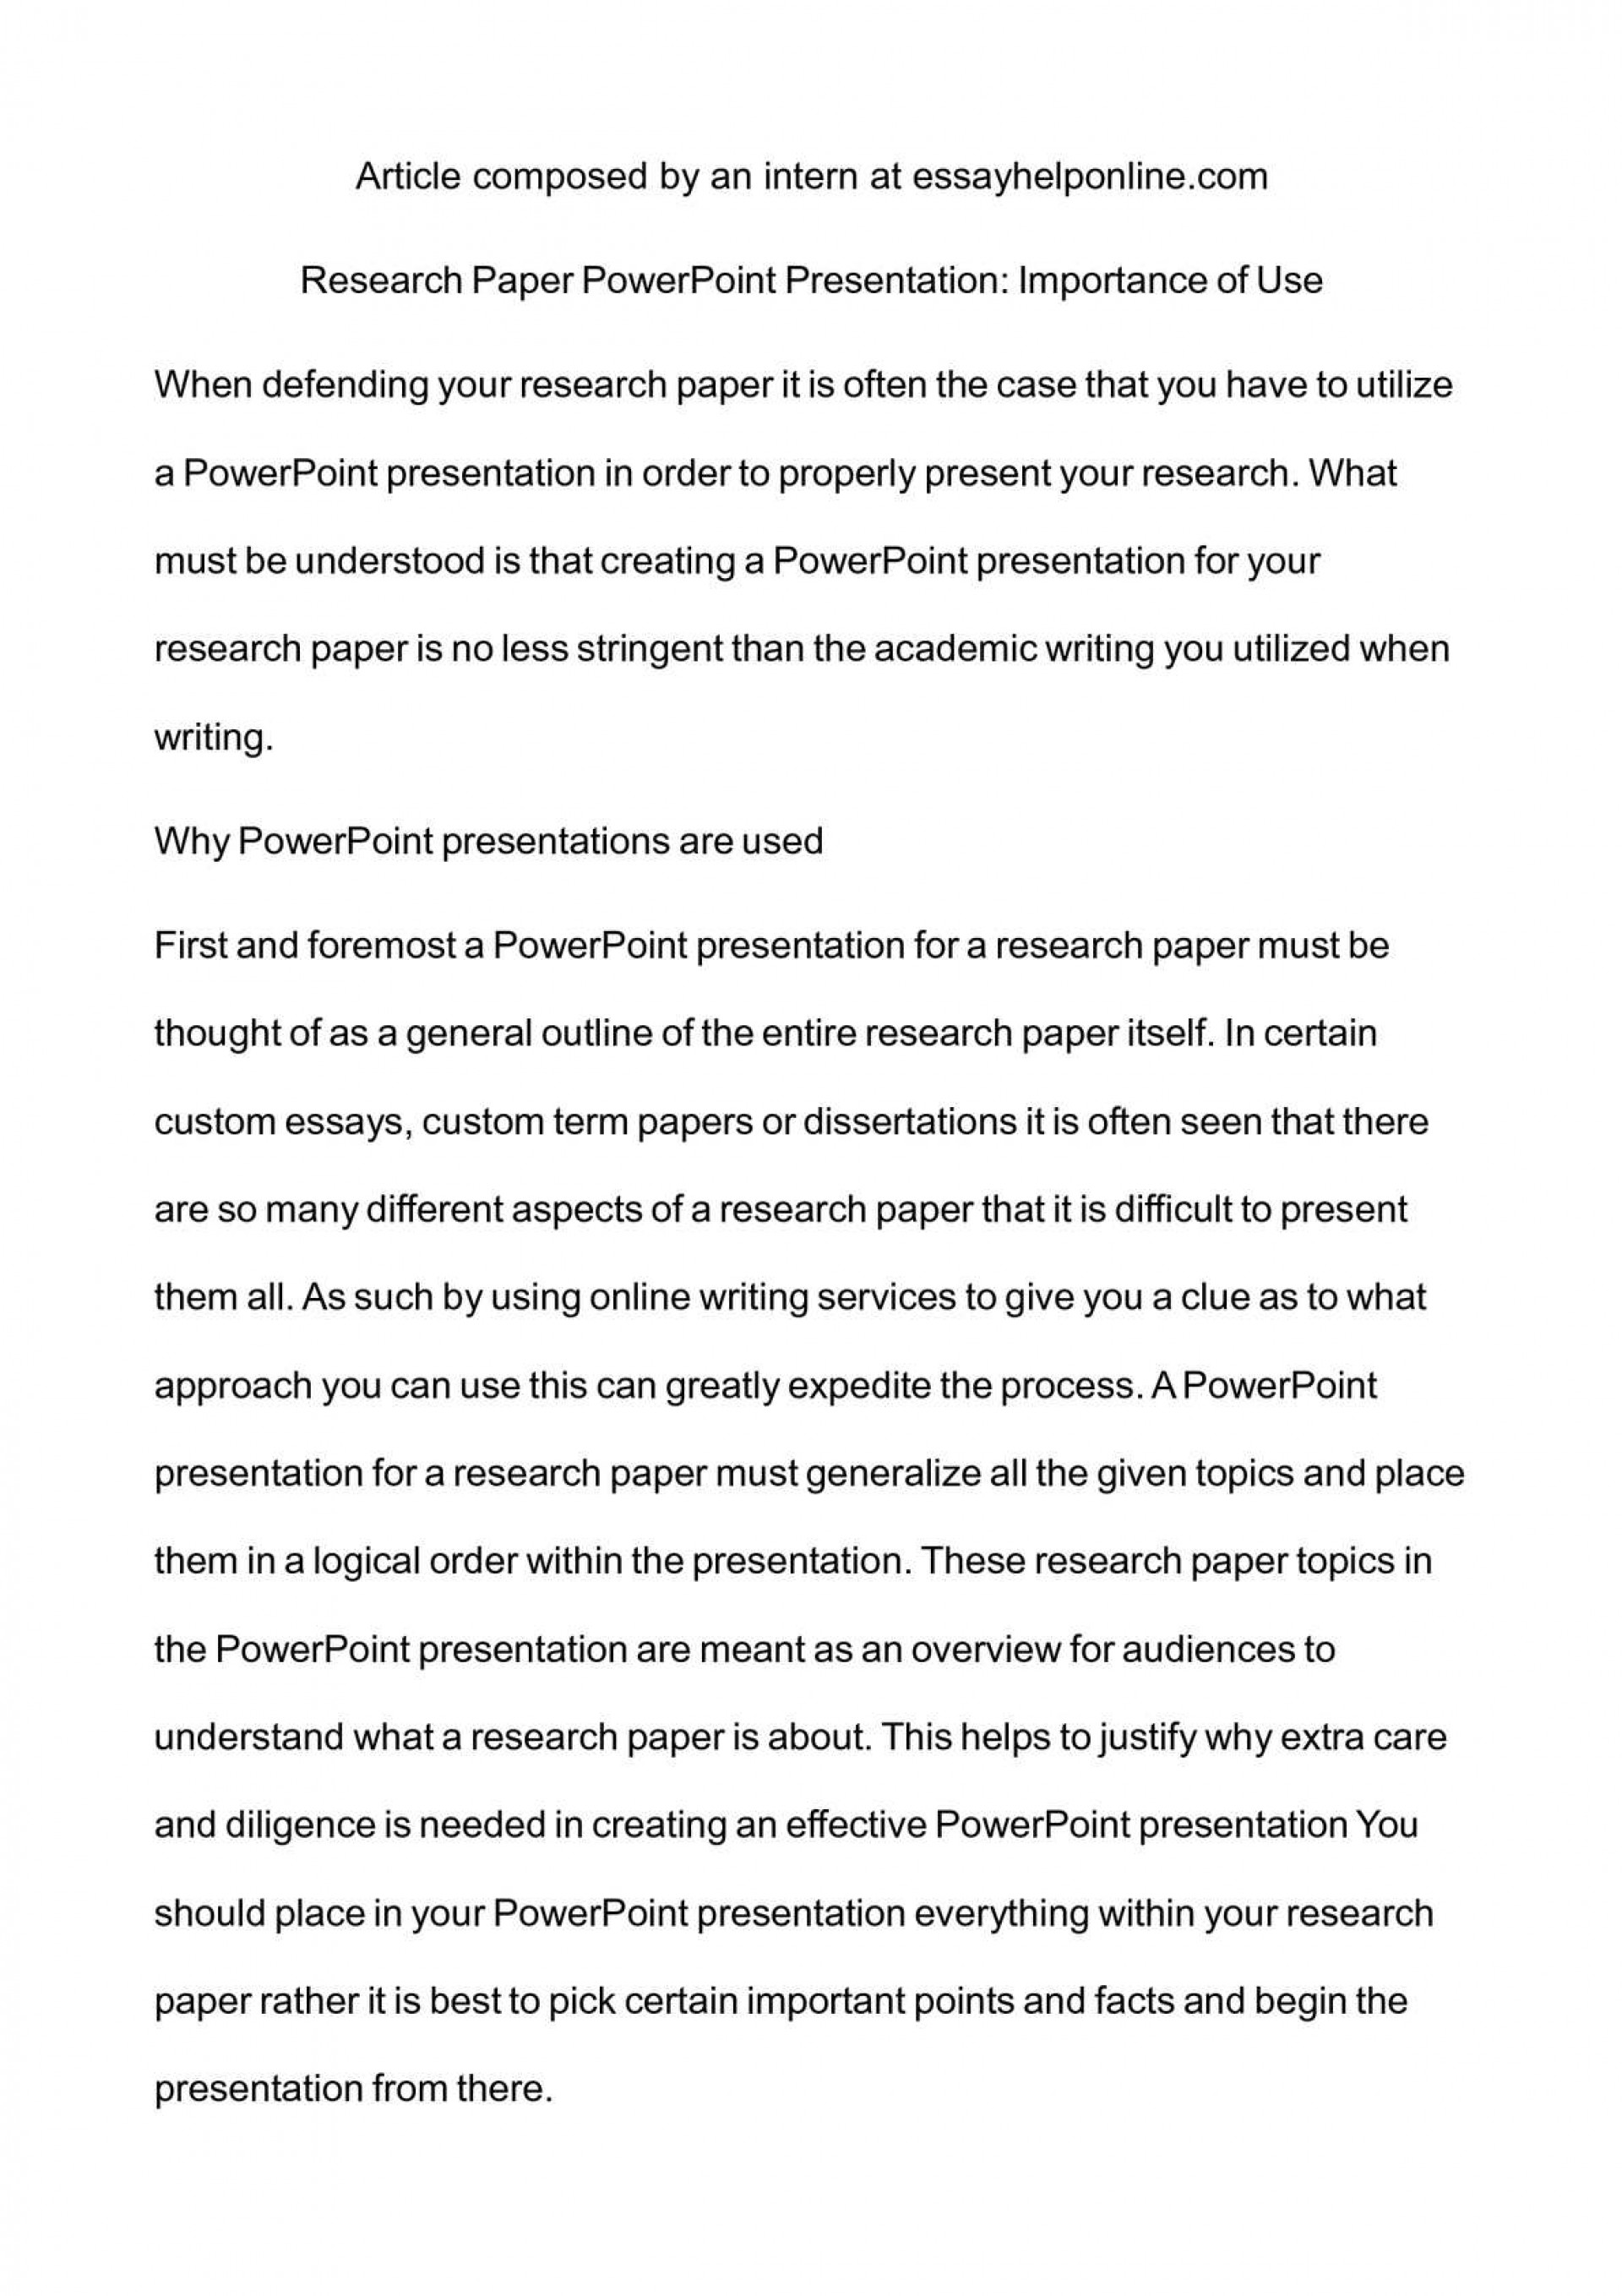 004 How To Research Paper Ppt Outstanding Write A Powerpoint Presentation Writing Scientific Make 1920